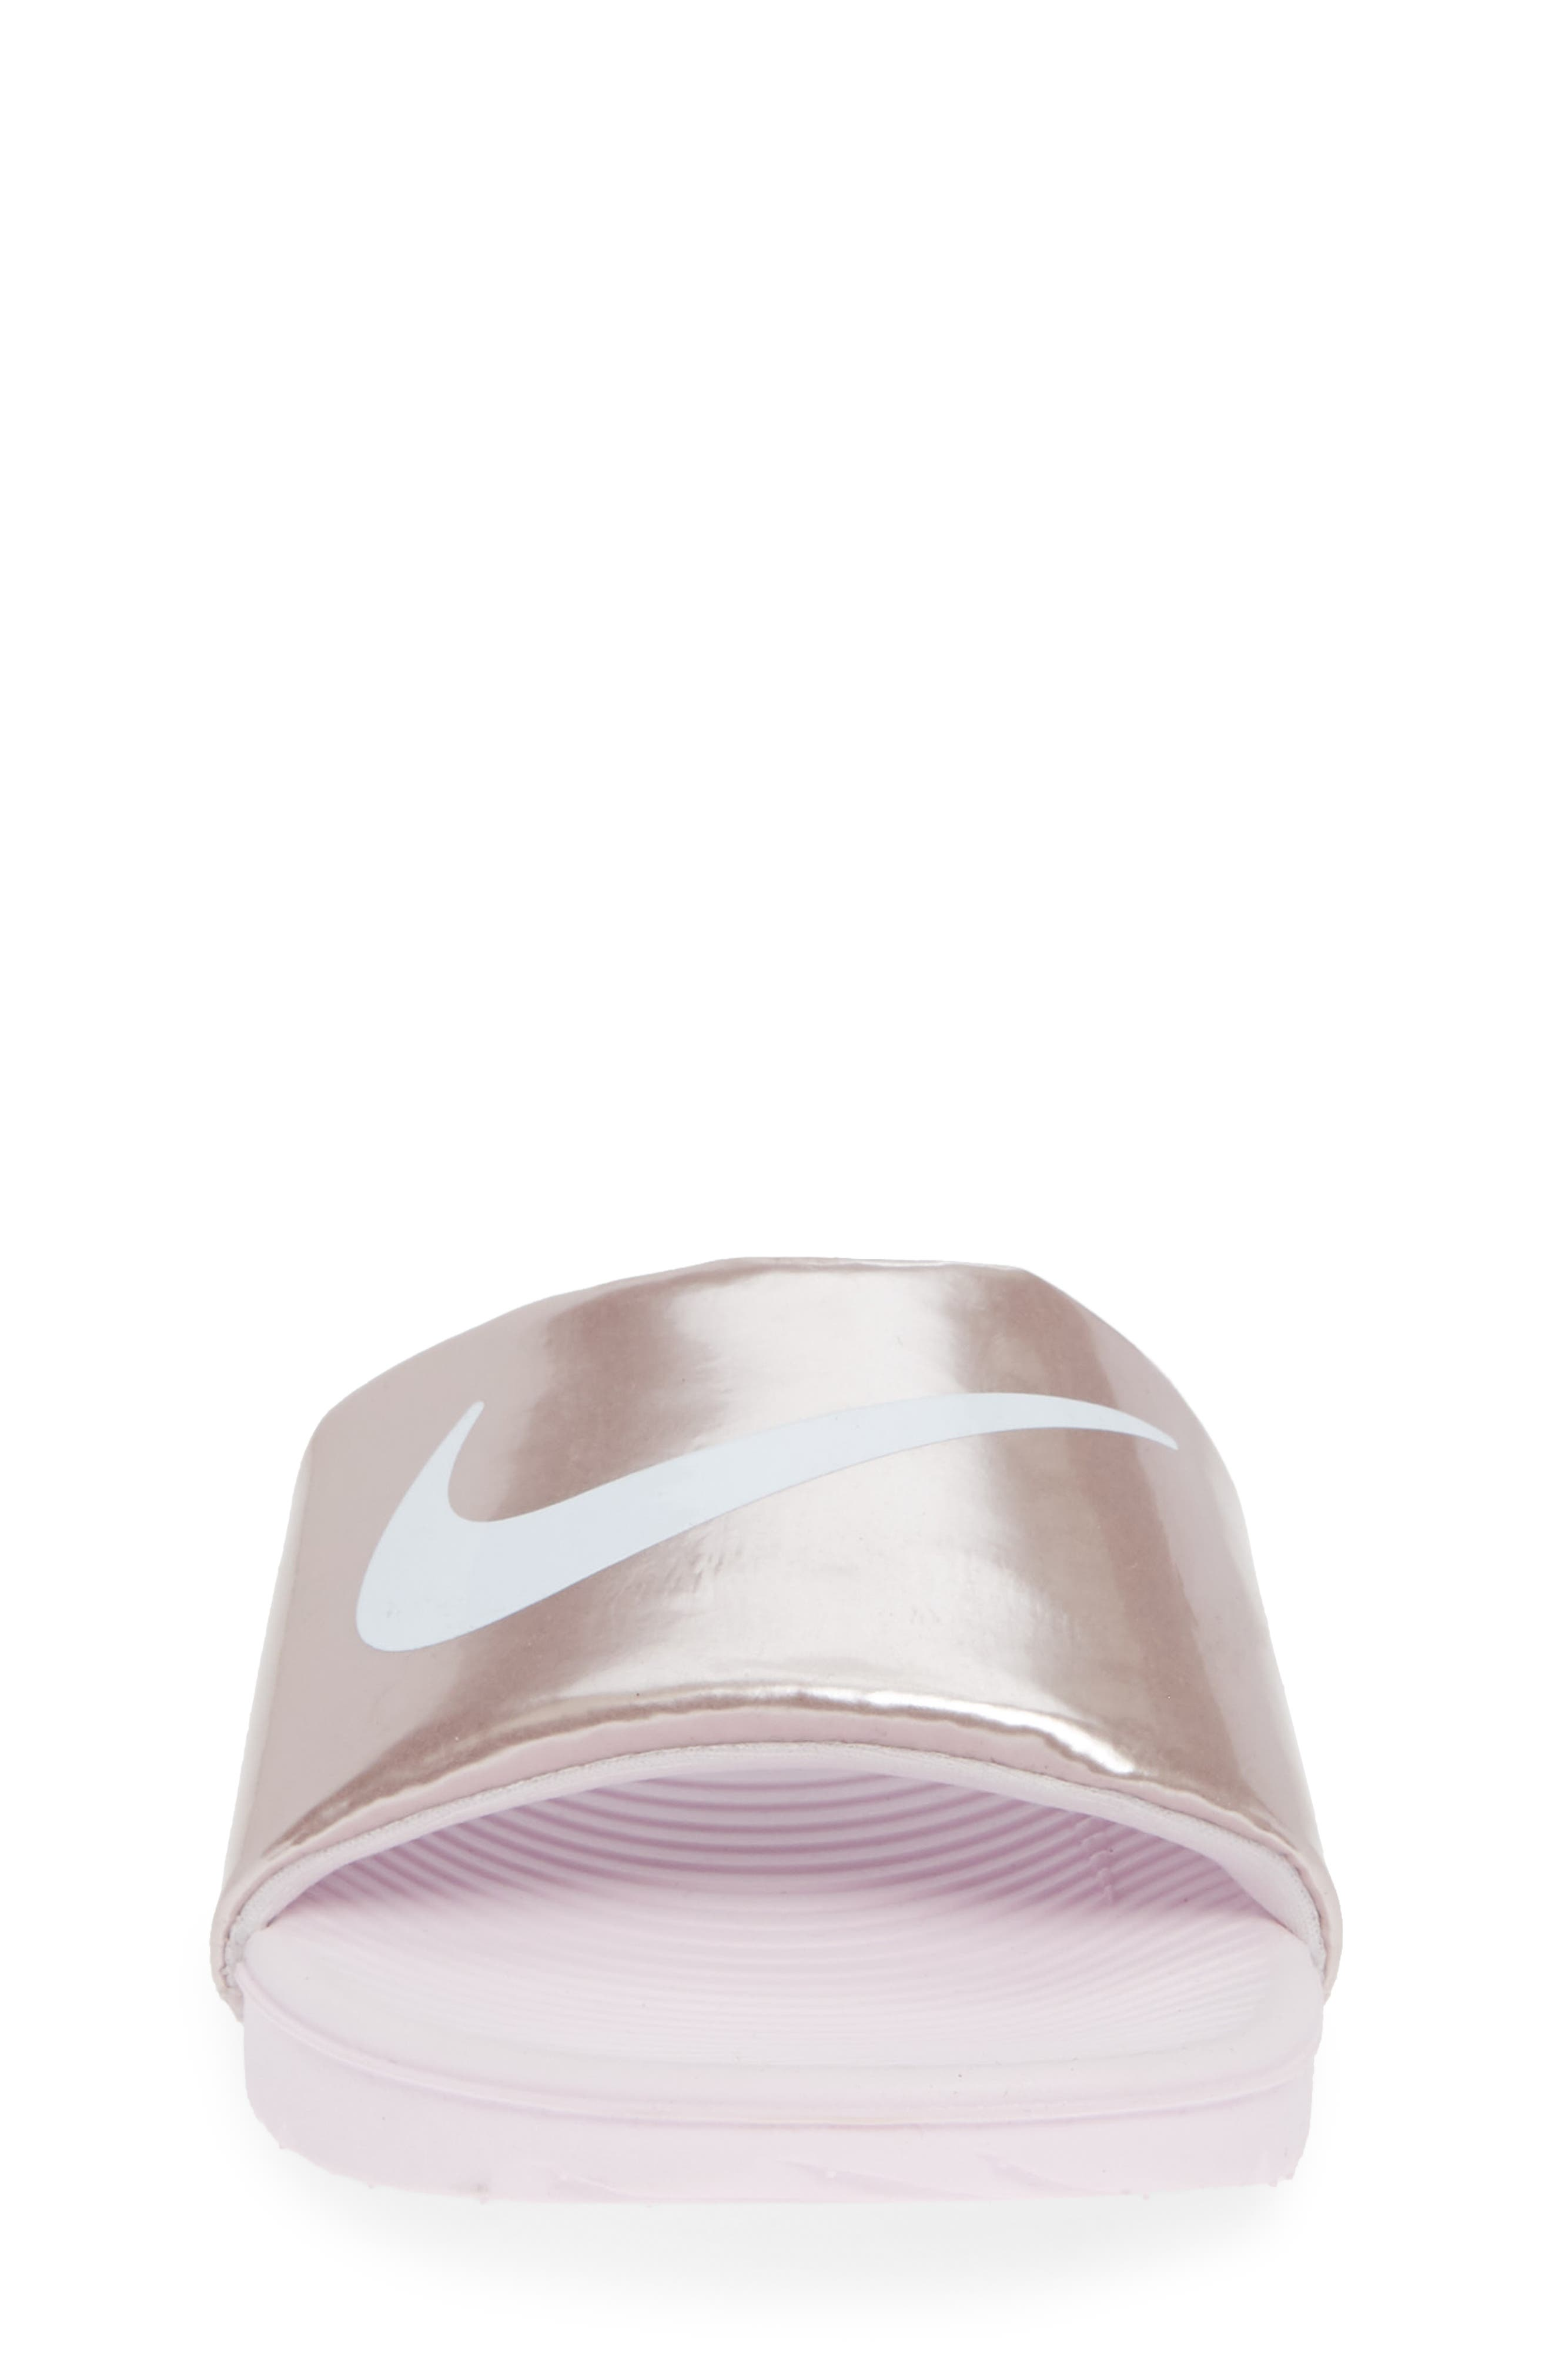 NIKE,                             'Kawa' Slide Sandal,                             Alternate thumbnail 4, color,                             ARCTIC PINK/ WHITE/ RED BRONZE